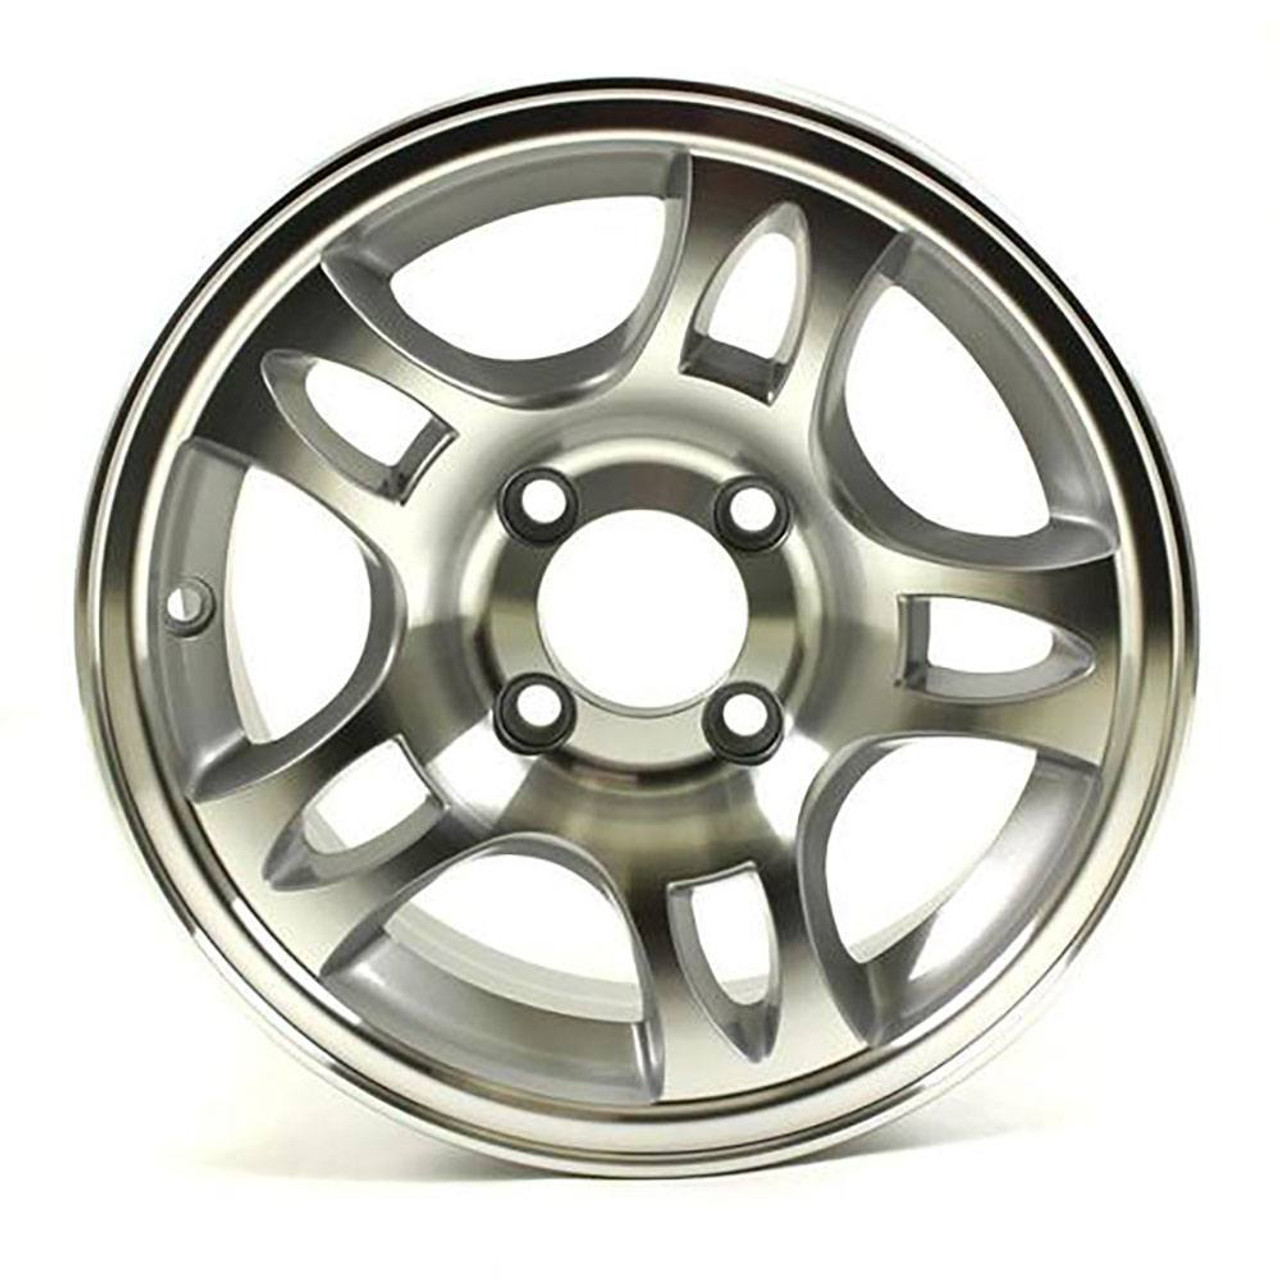 "13X5 4-Lug on 4"" Aluminum S5 Trailer Wheel - S535440"